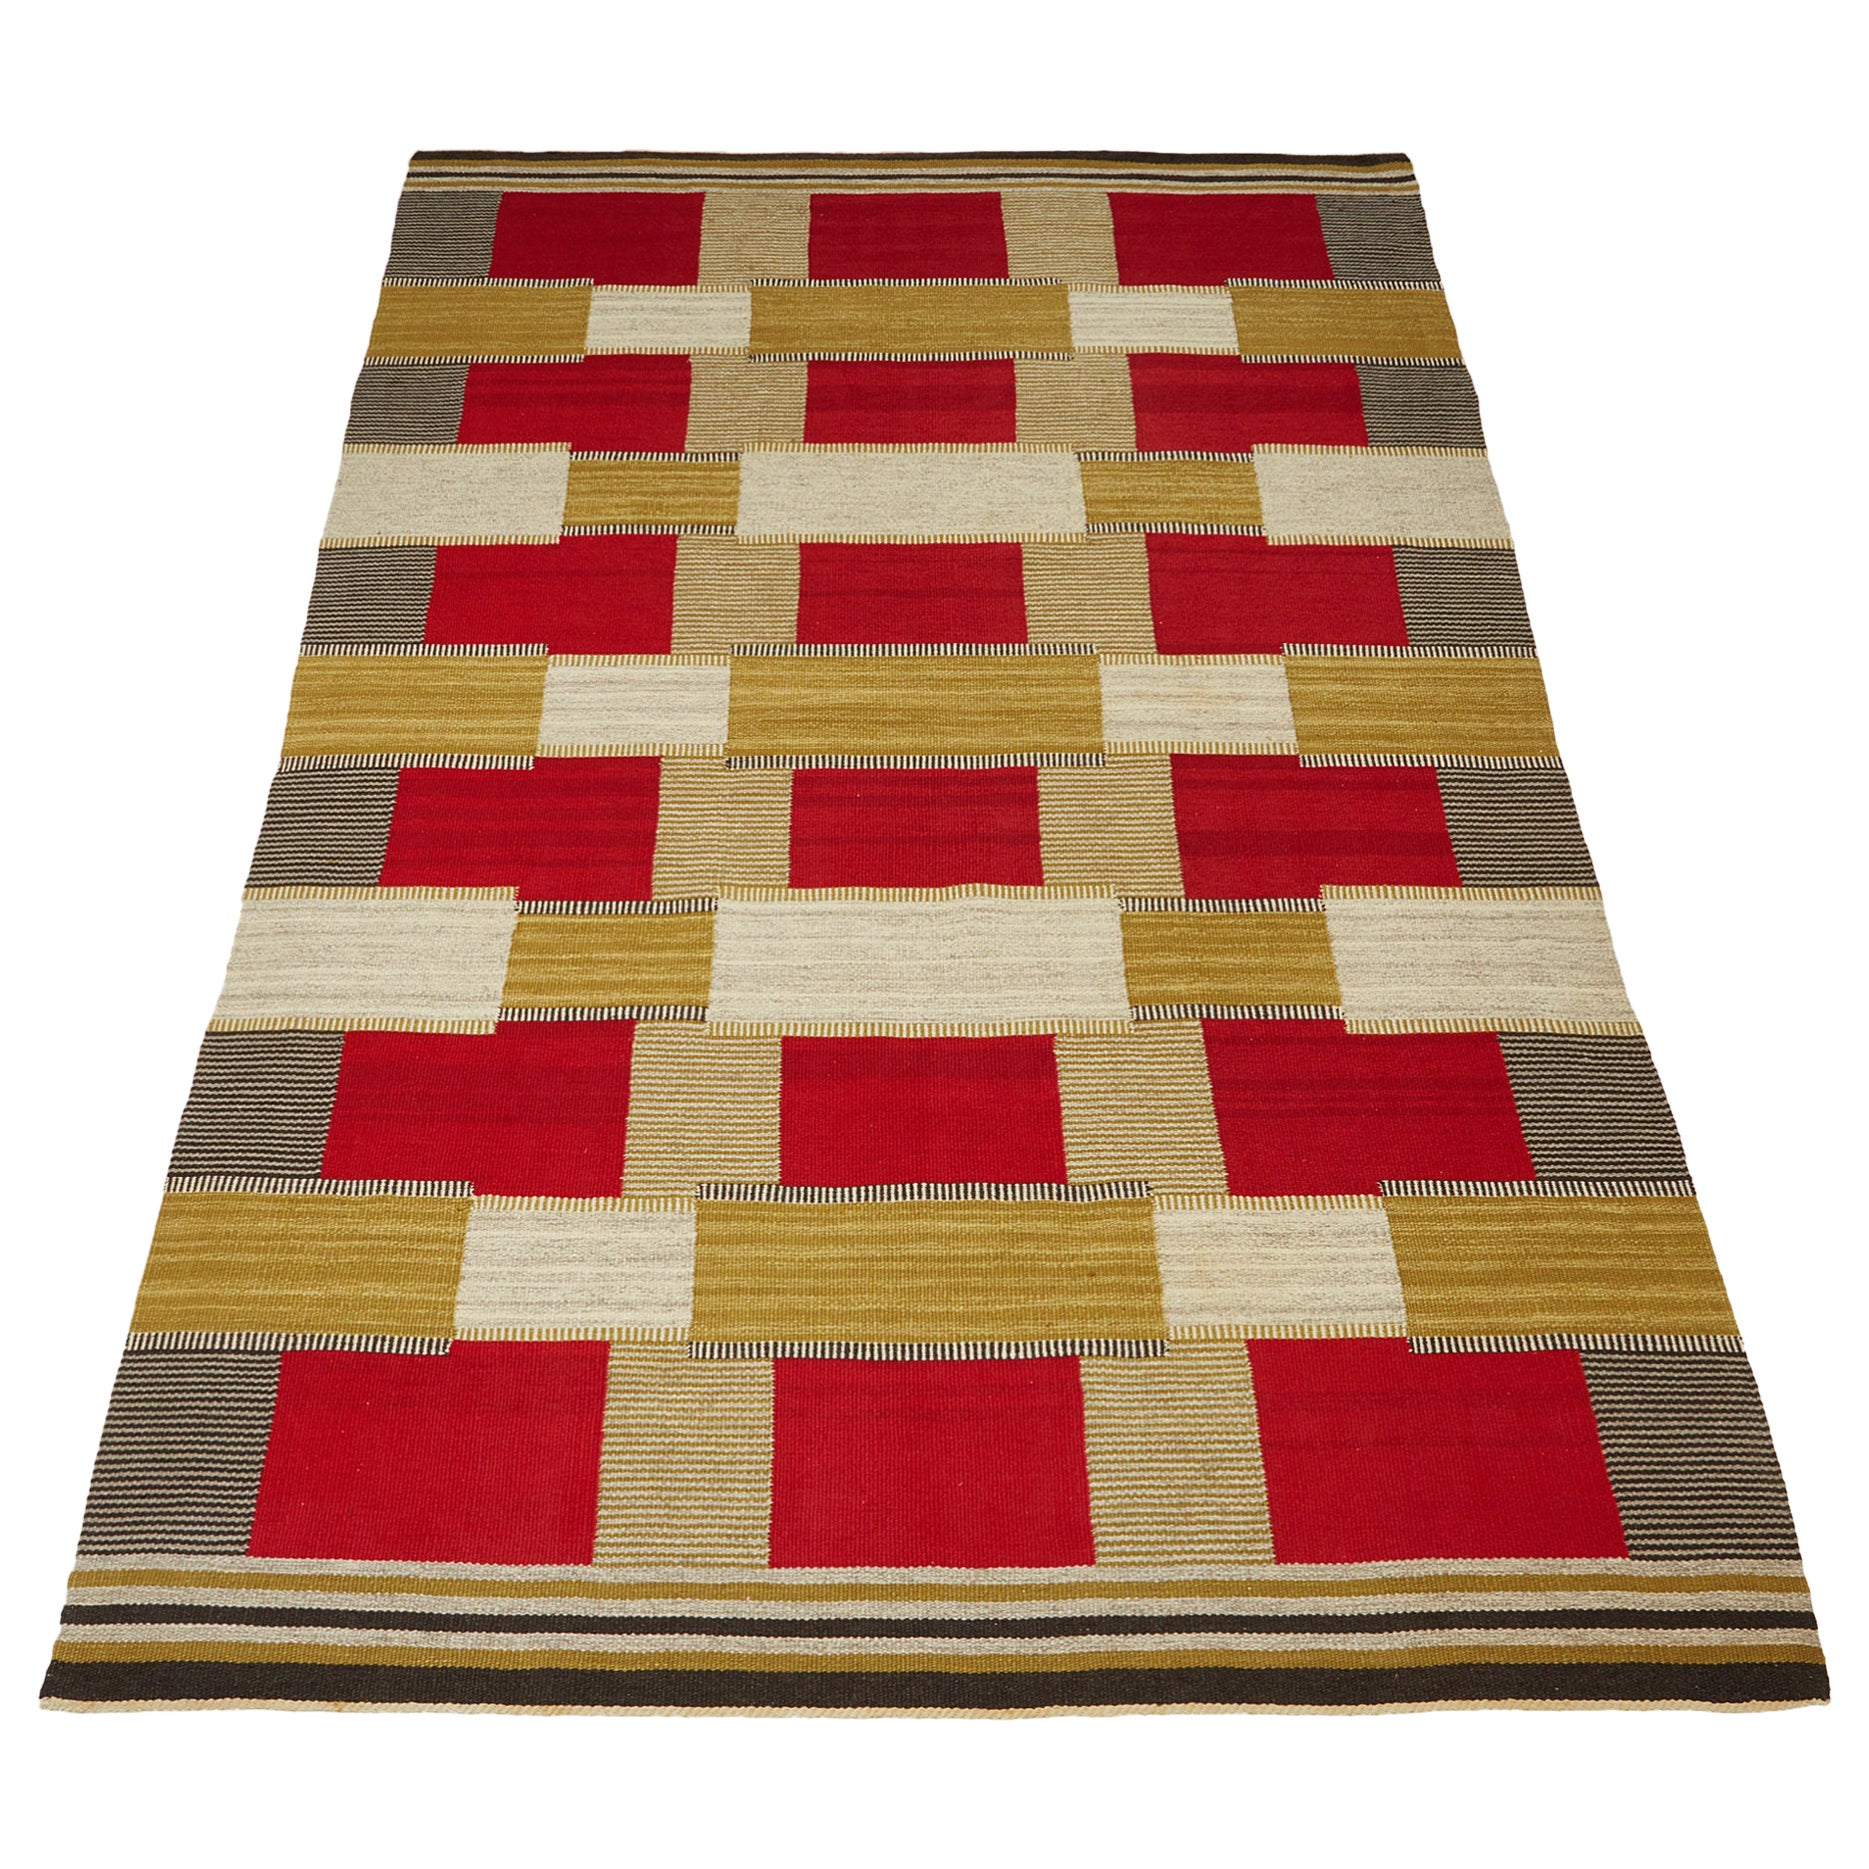 Rug, Anonymous, Sweden, 1950s